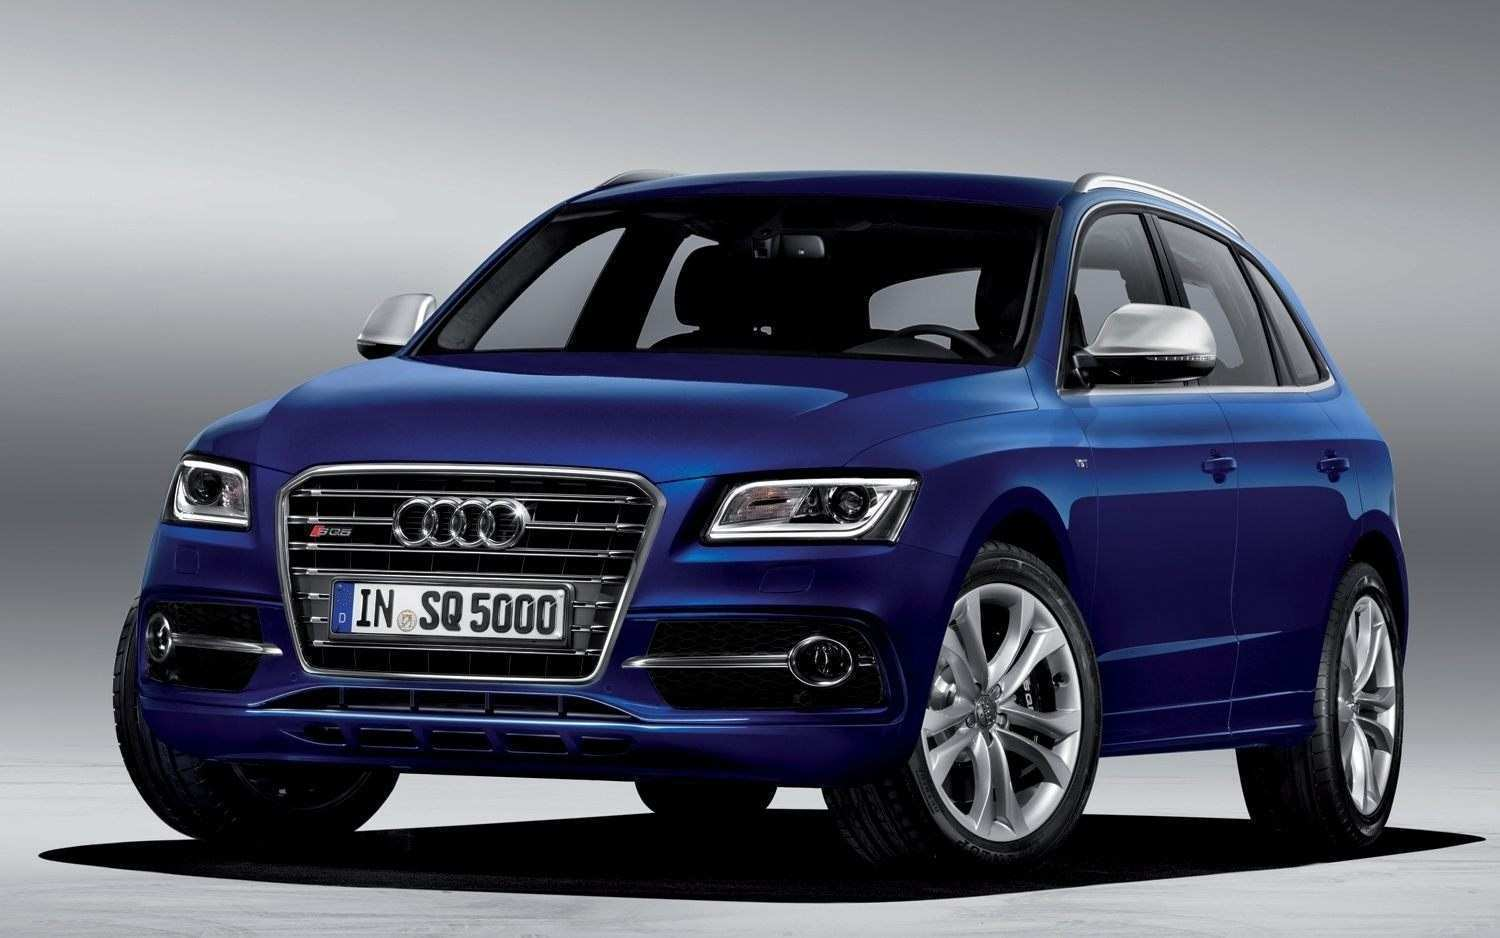 75 The Best When Does The 2020 Audi Q5 Come Out Pricing